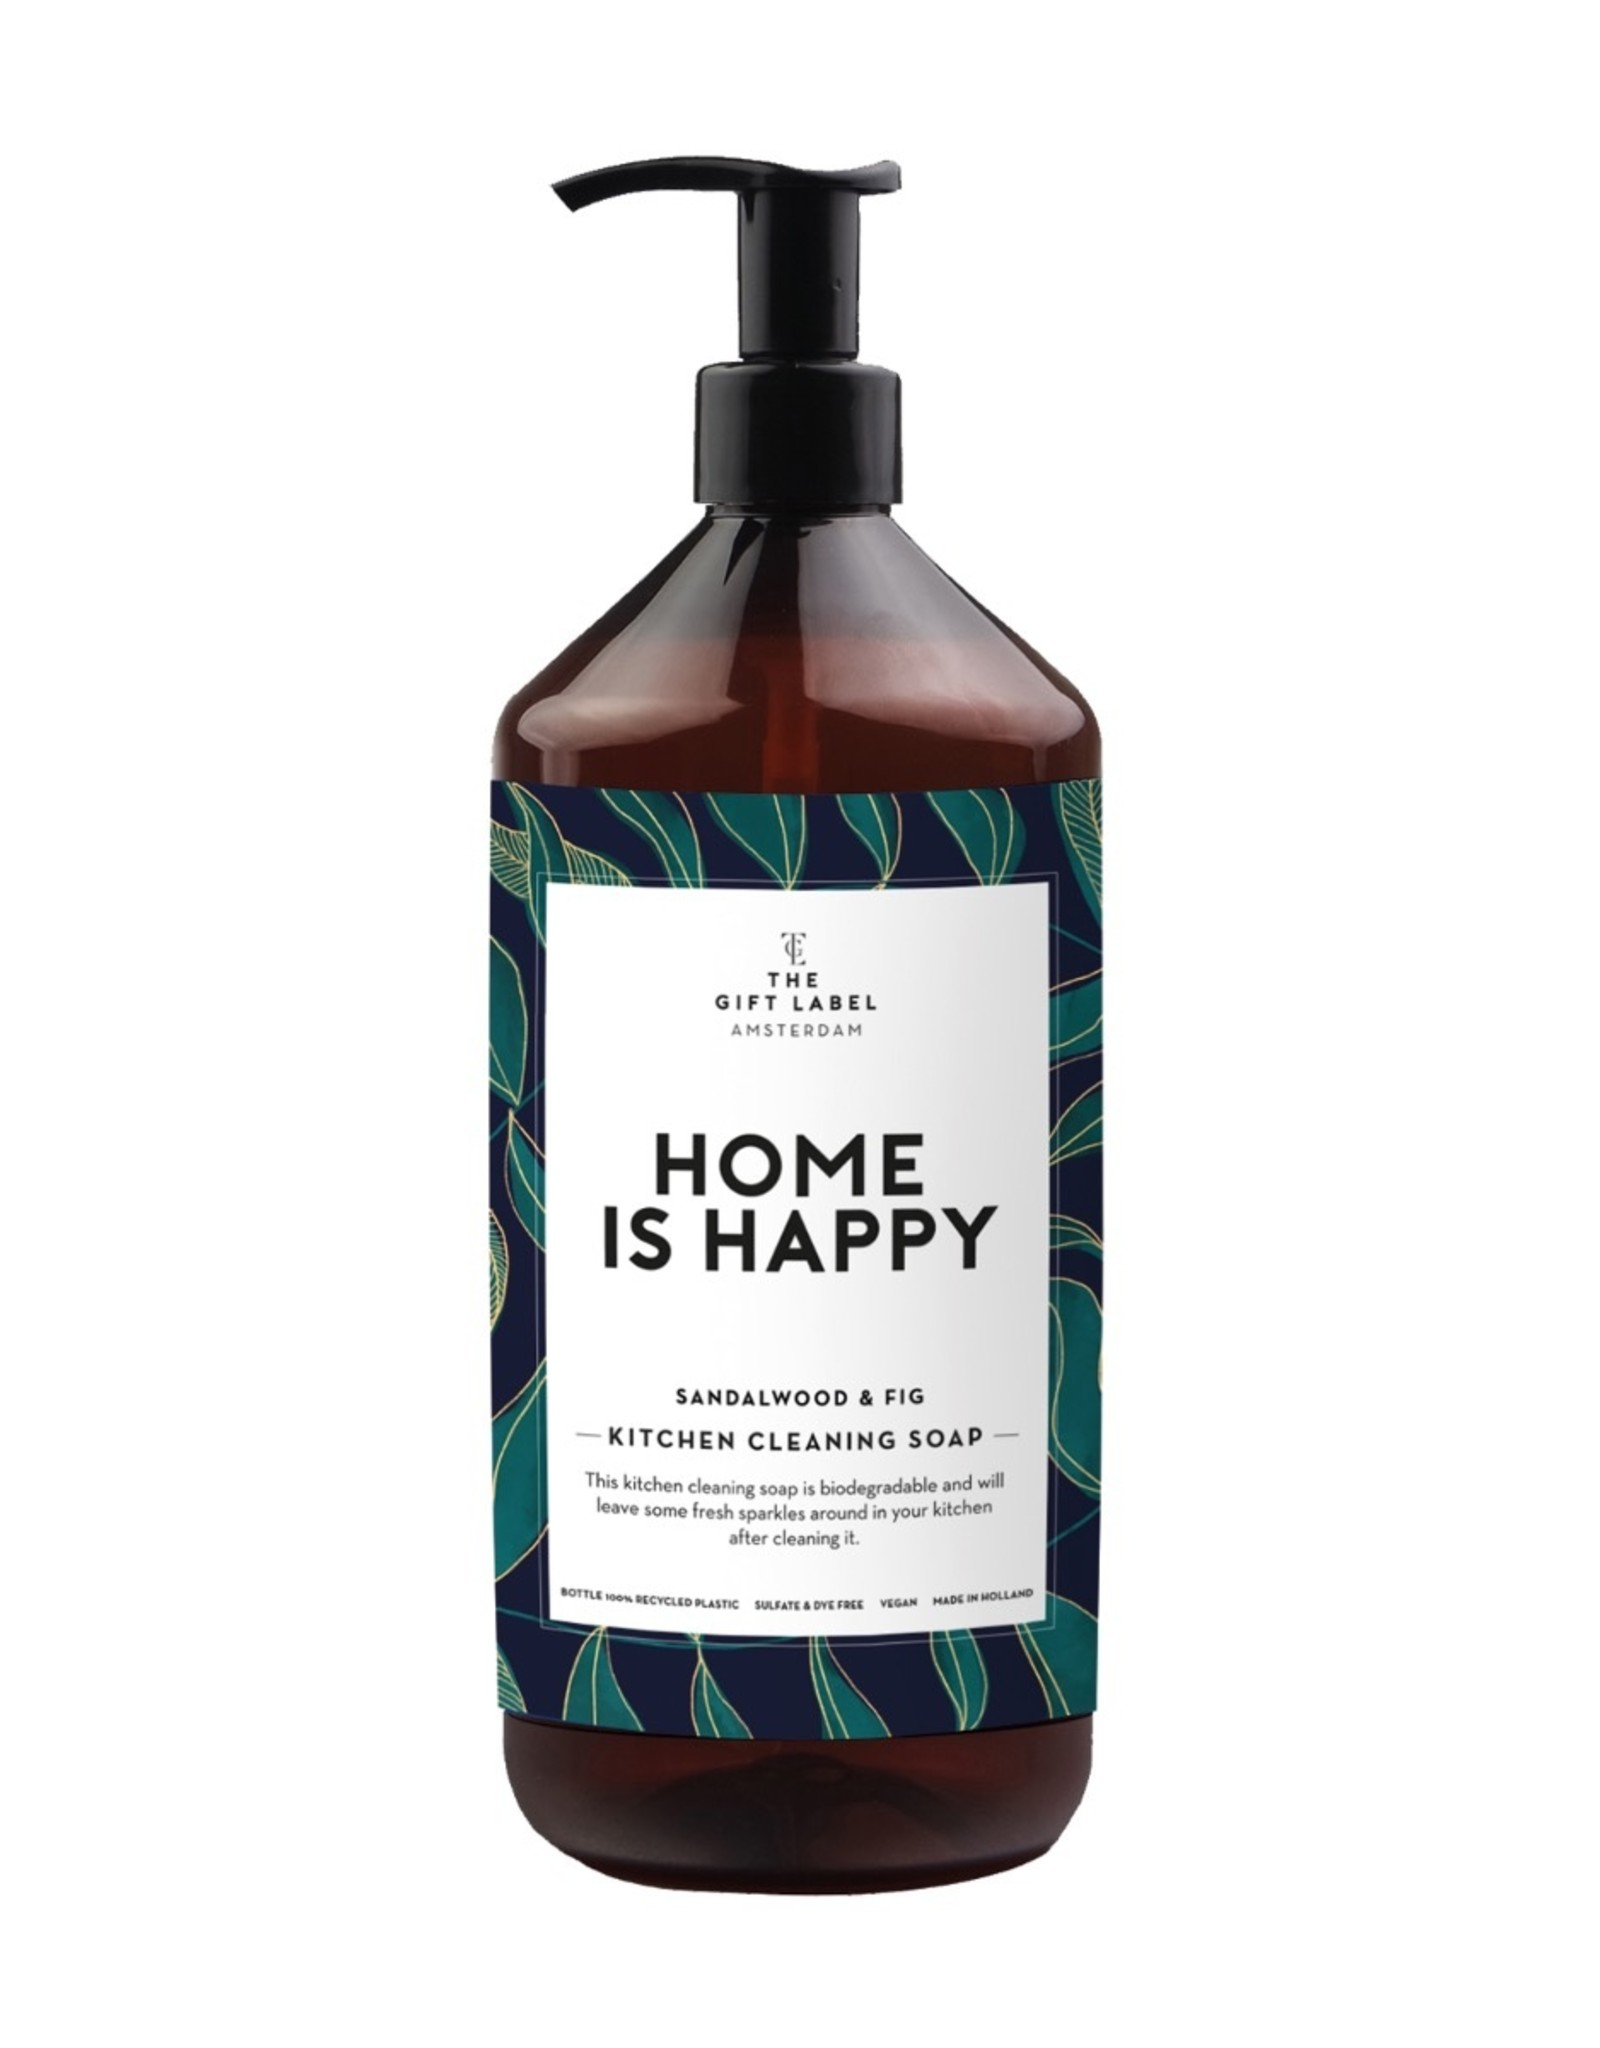 The Gift Label The Gift Label Kitchen Cleaning Soap Home is Happy